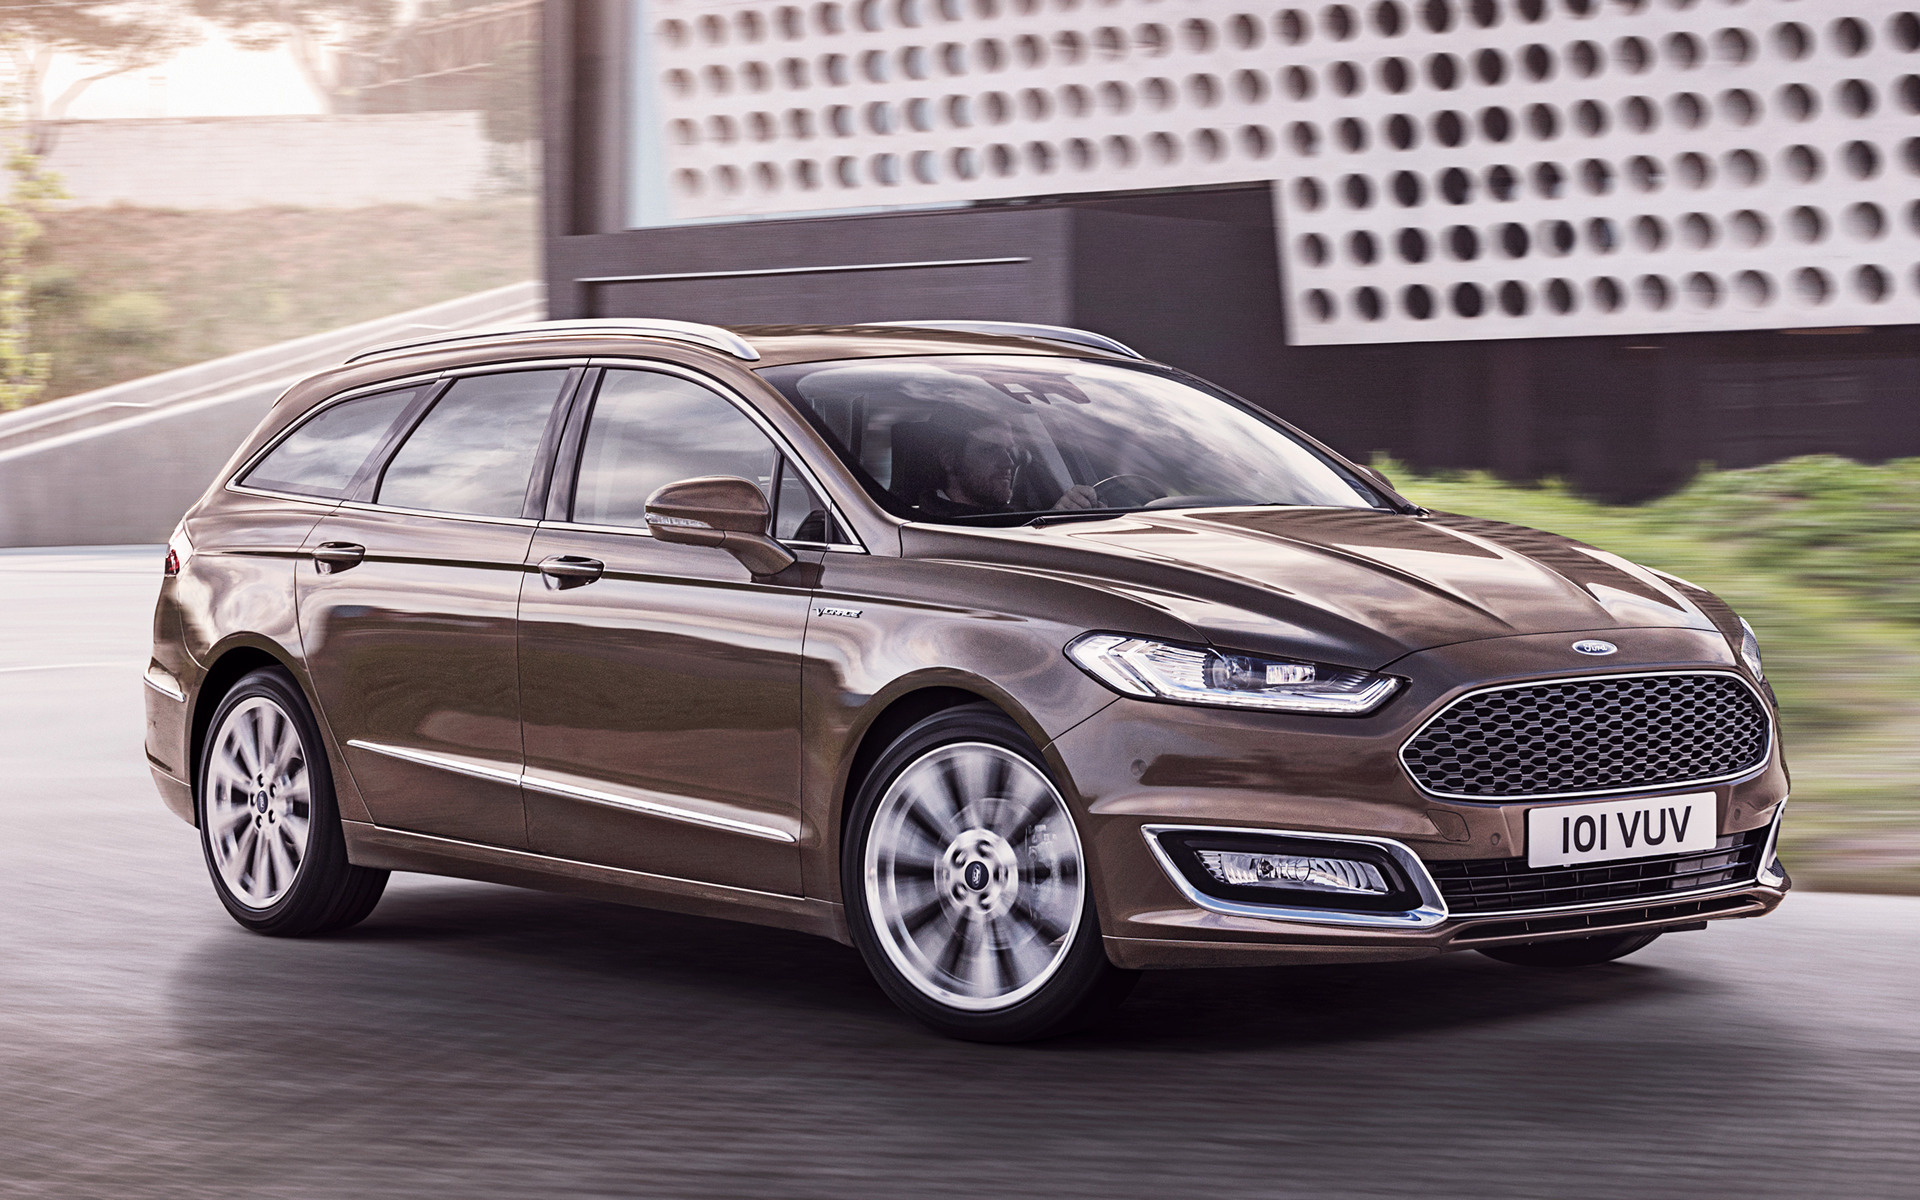 Ford Vignale Mondeo Turnier Car Wallpaper on 2015 Dodge Sedan